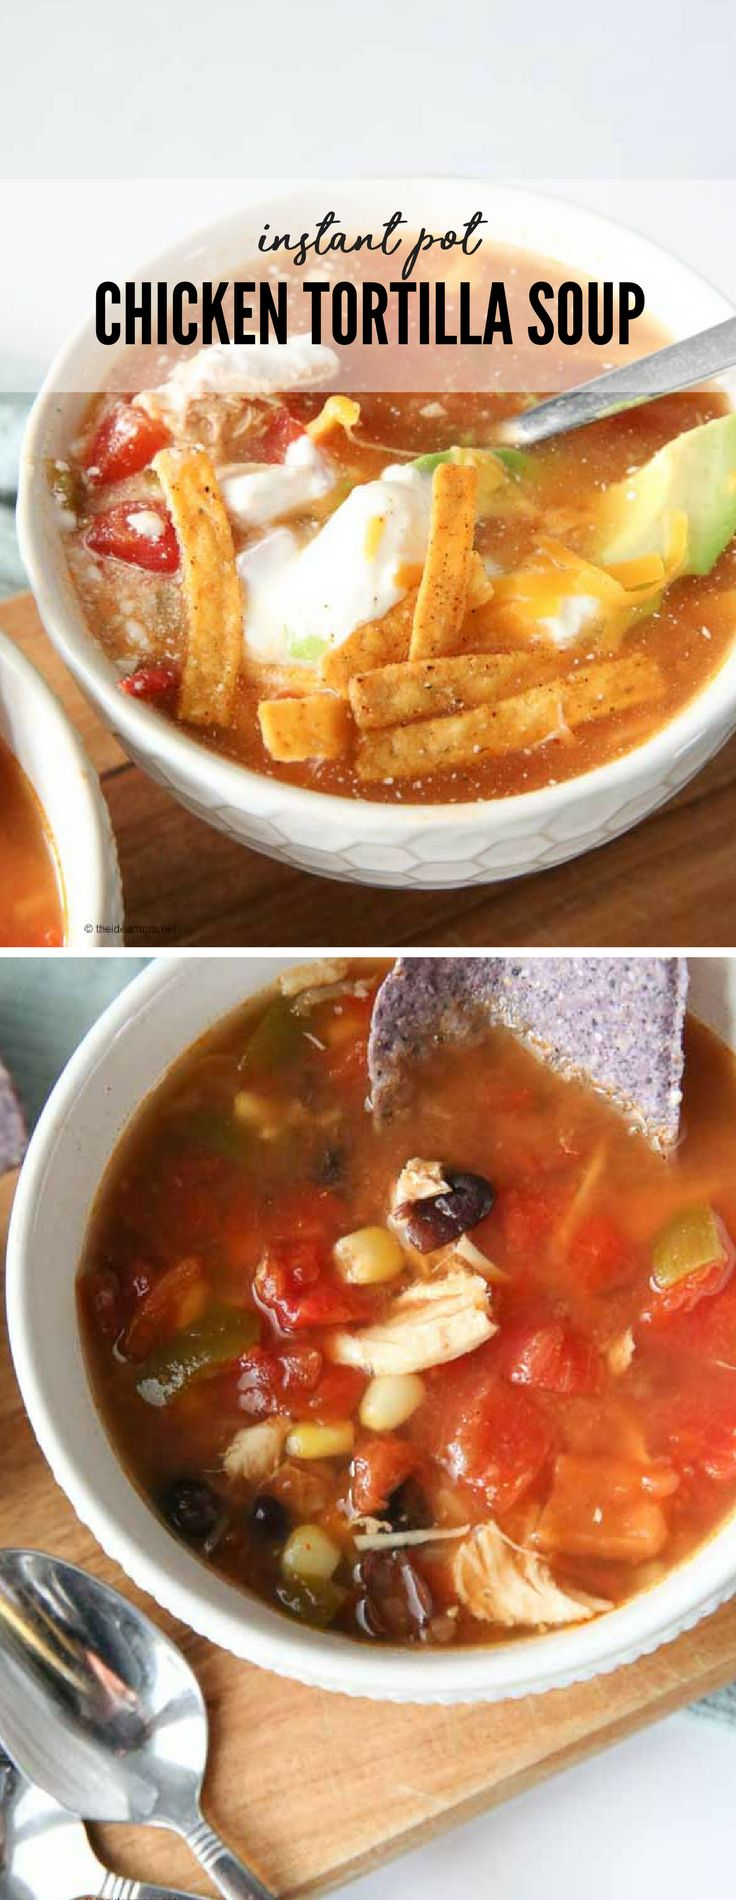 Flavorful and delicious this Instant Pot Chicken Tortilla Soup is an easy soup recipe the whole family will love. Fast and easy this dinner recipe can be on the table in less than 30 minutes!